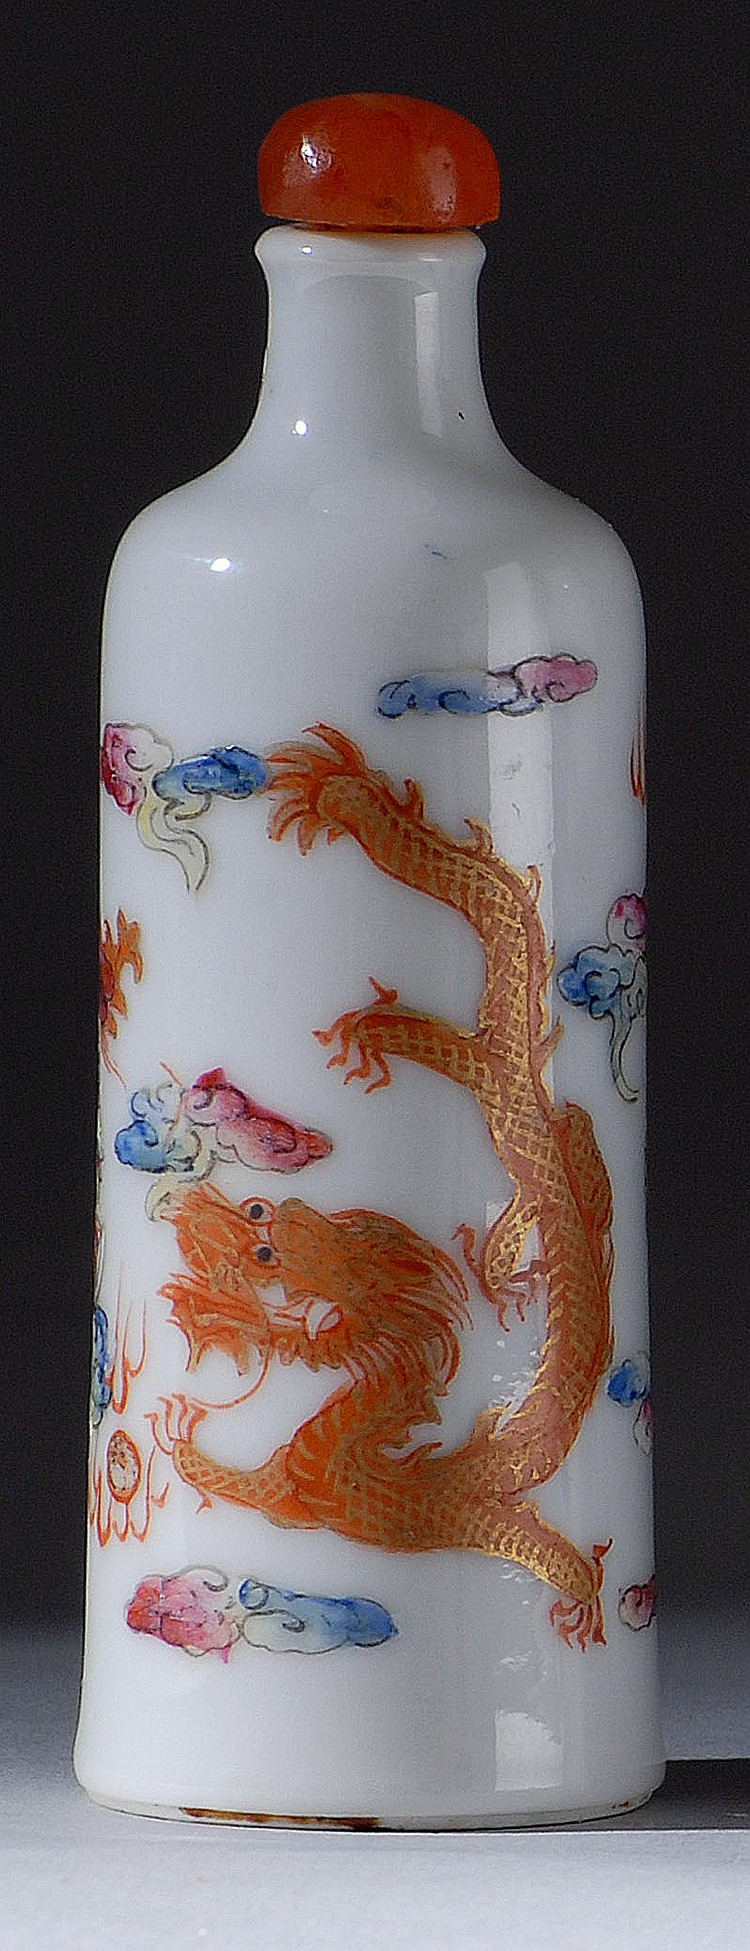 PORCELAIN SNUFF BOTTLE In cylinder form with dragon and phoenix design. Four-character mark on base. Height 3¼